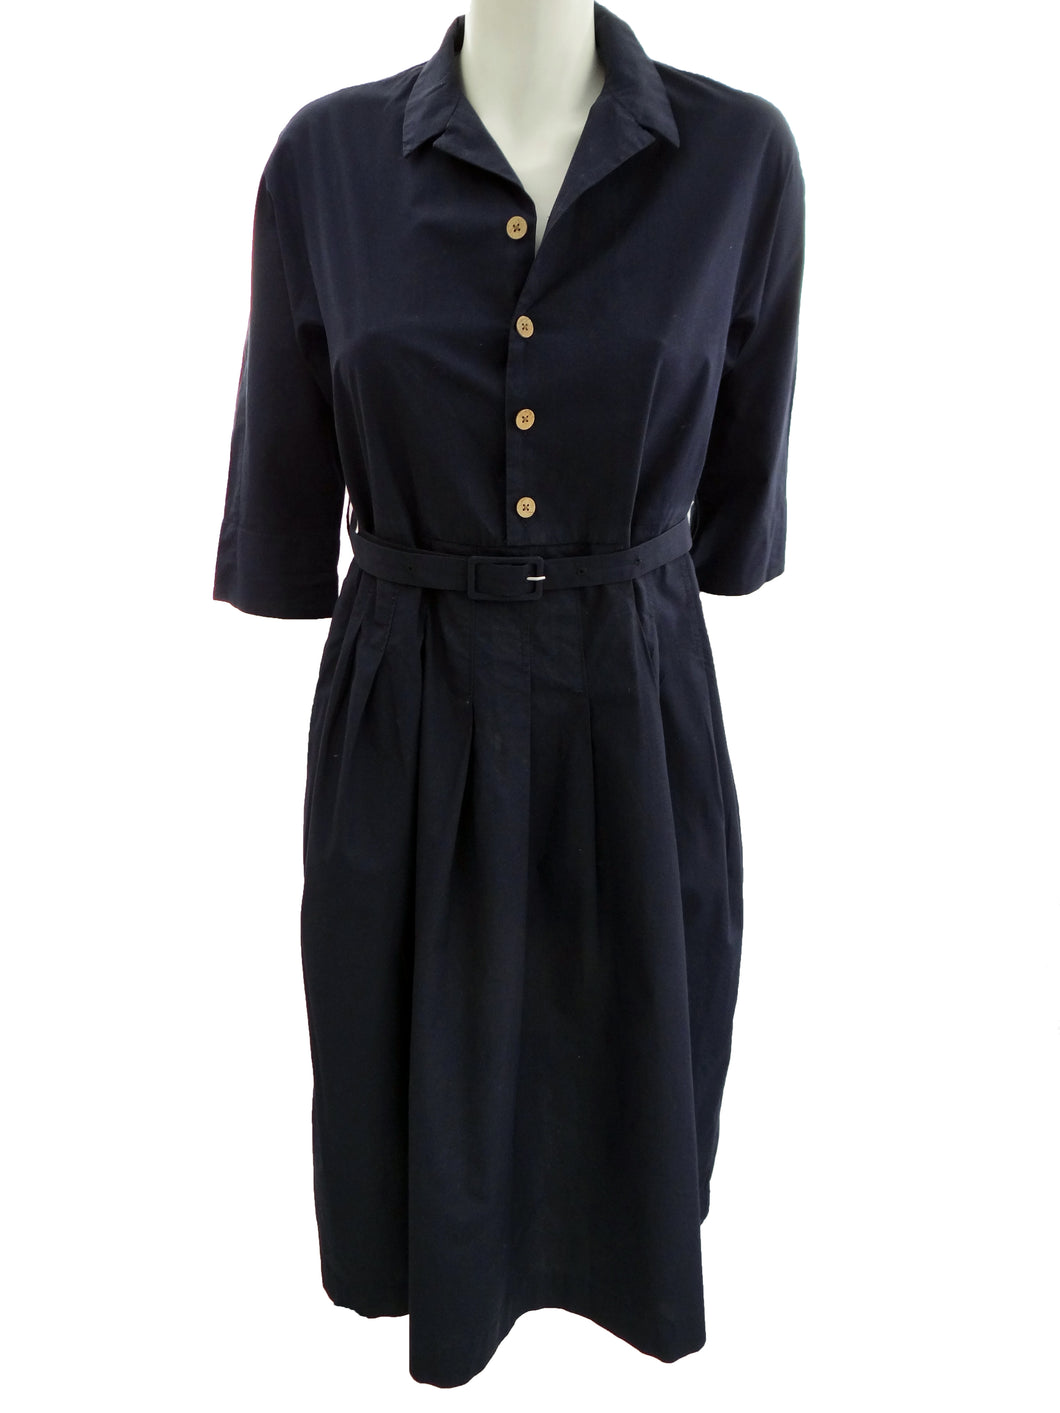 Navy Blue Shirt Dress with Pleated Skirt by Umu908, UK10-12